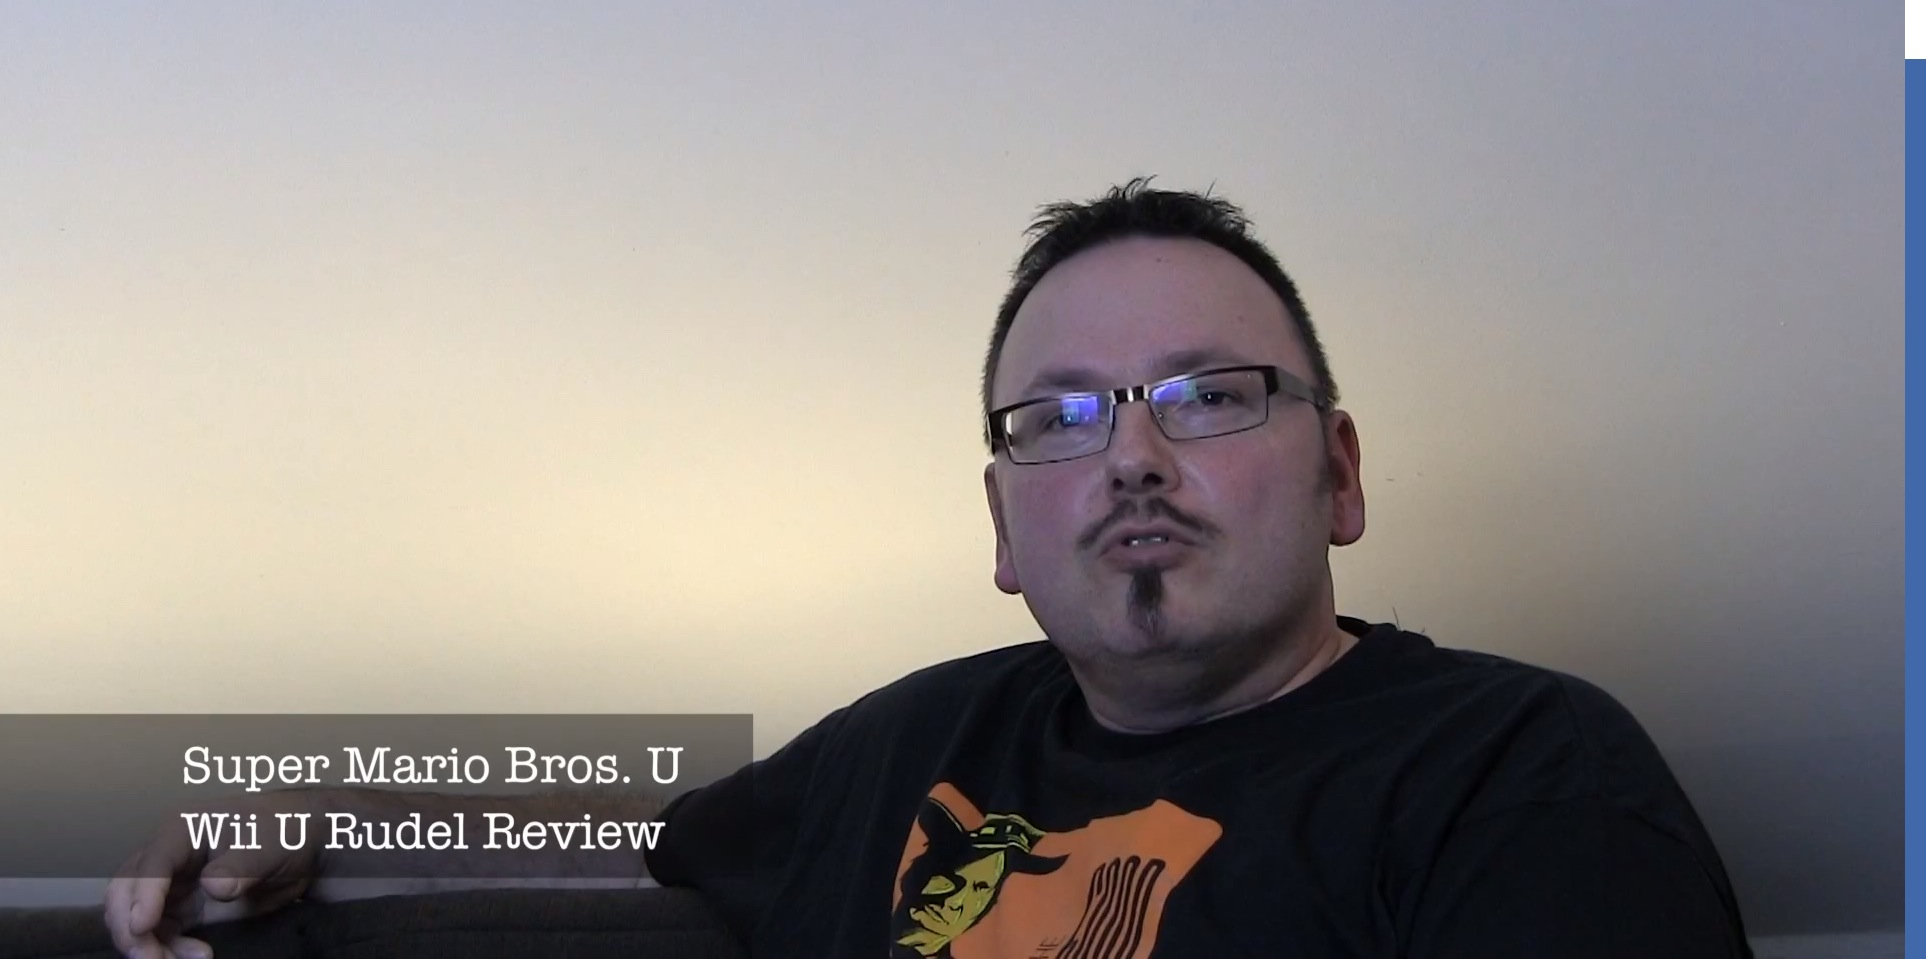 Wii U Rudel Review Super Mario Bros U